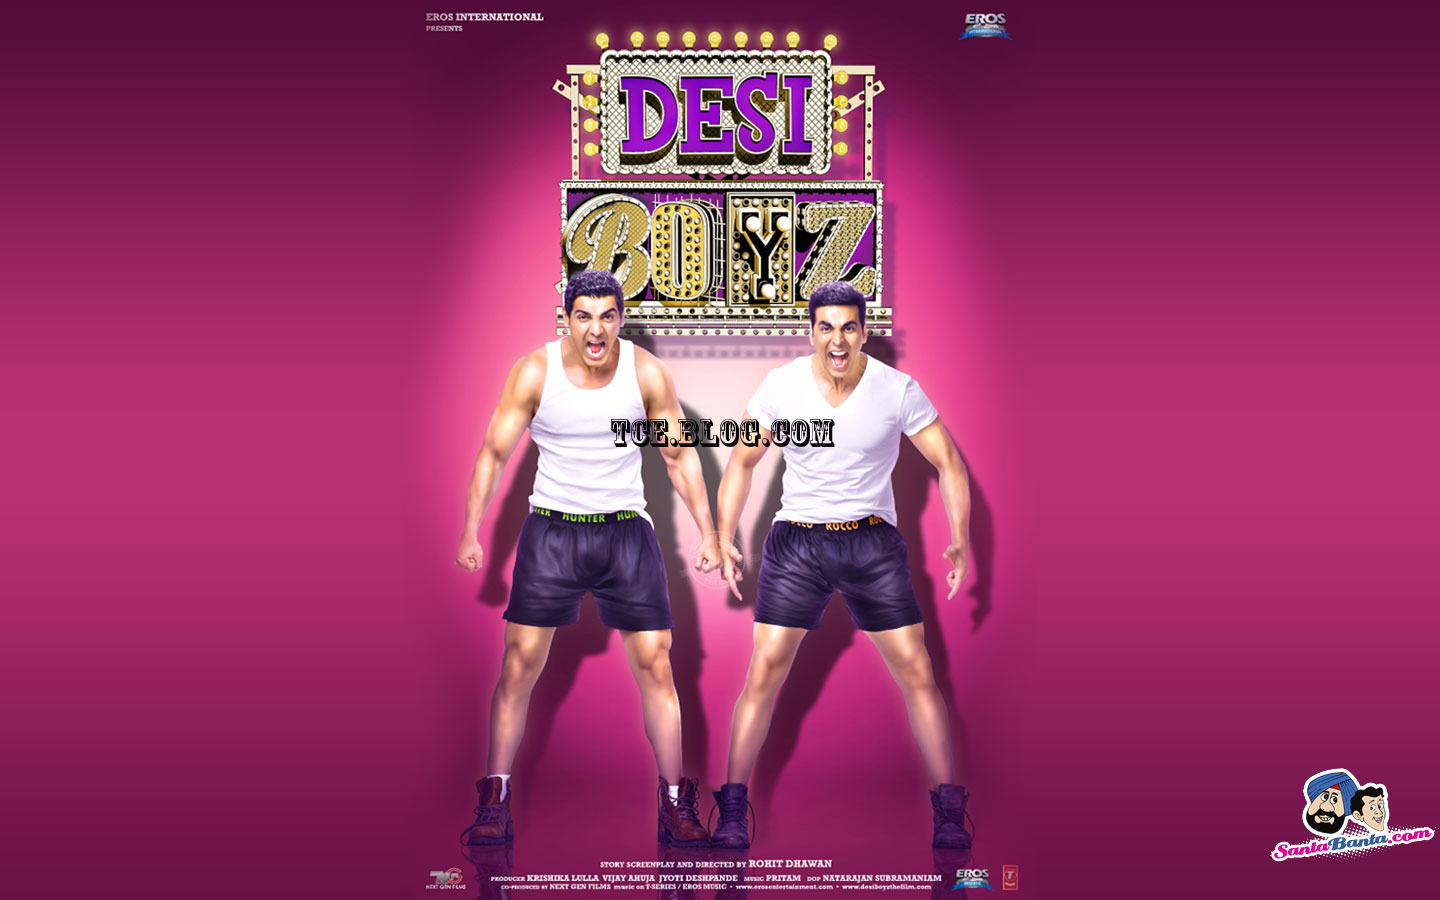 download wallpaper desi boyz - photo #22